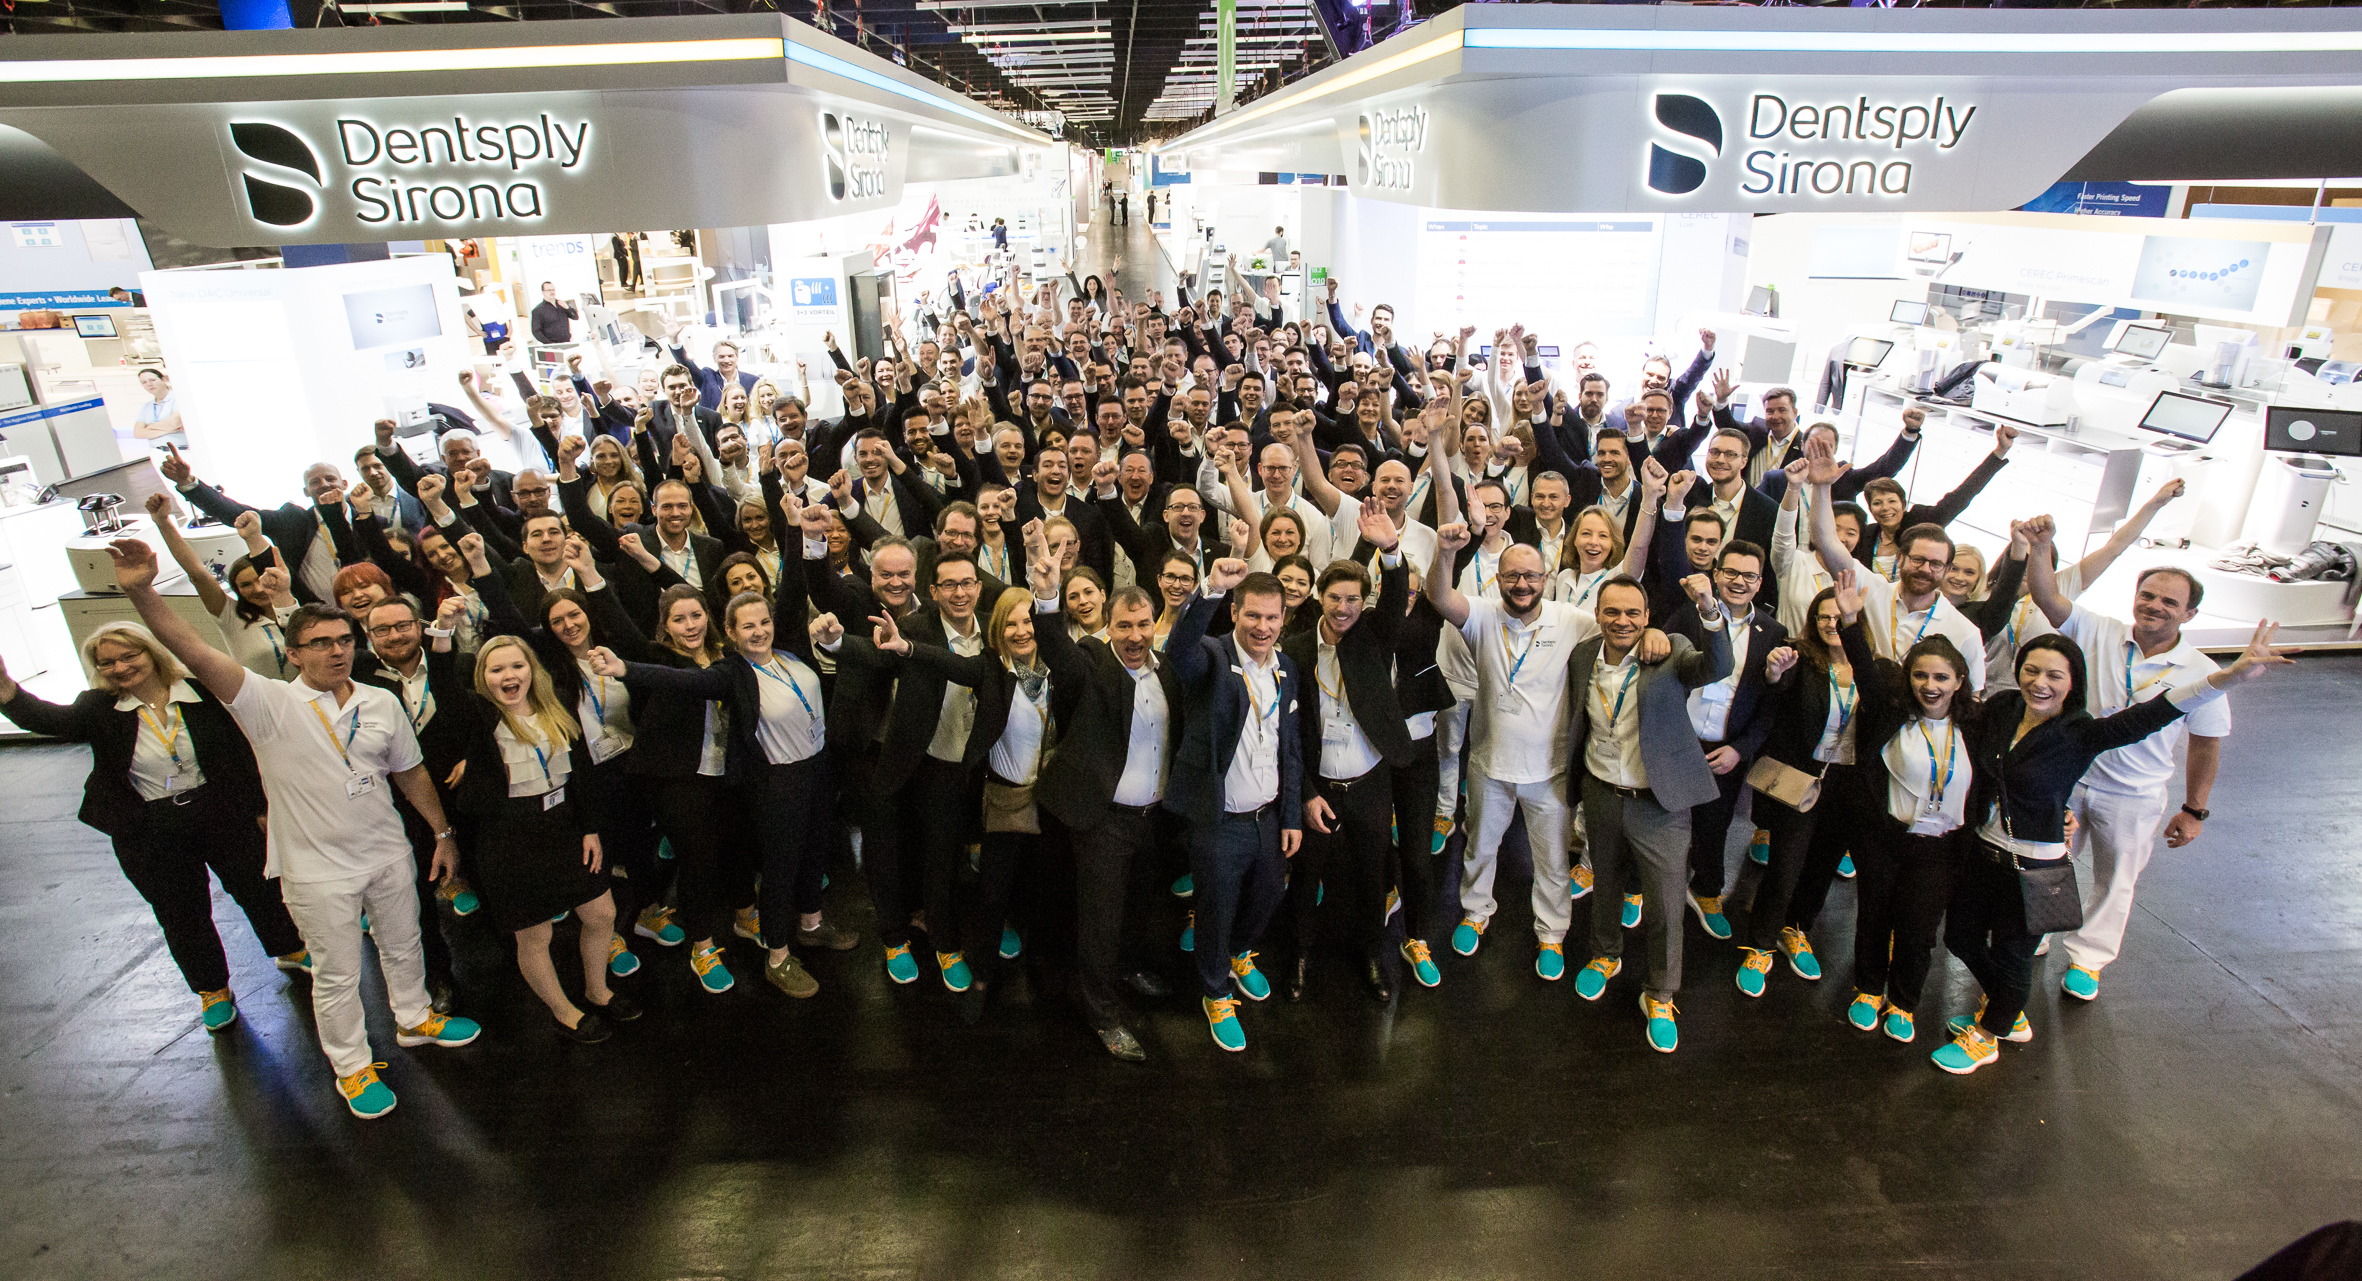 Innovative and efficient: Dentsply Sirona presented itself as a new